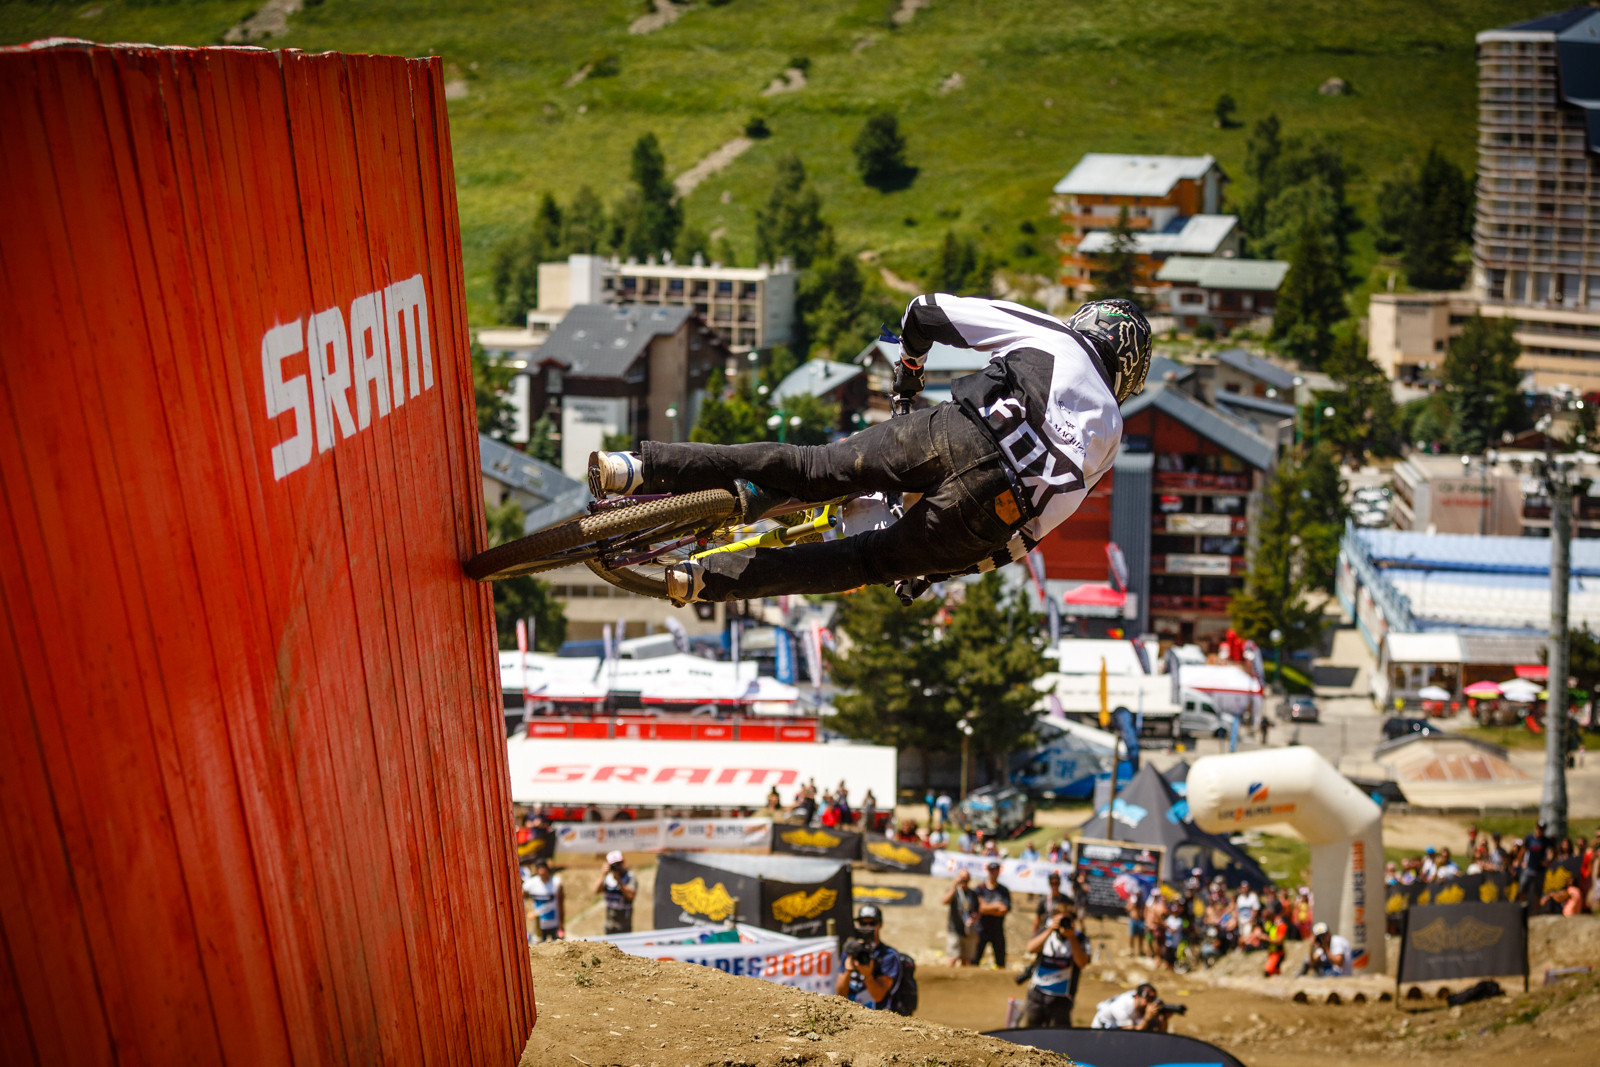 Sam Reynolds, Crankworx L2A Dual Speed Style - Crankworx L2A Speed and Style Photos and Results - Mountain Biking Pictures - Vital MTB